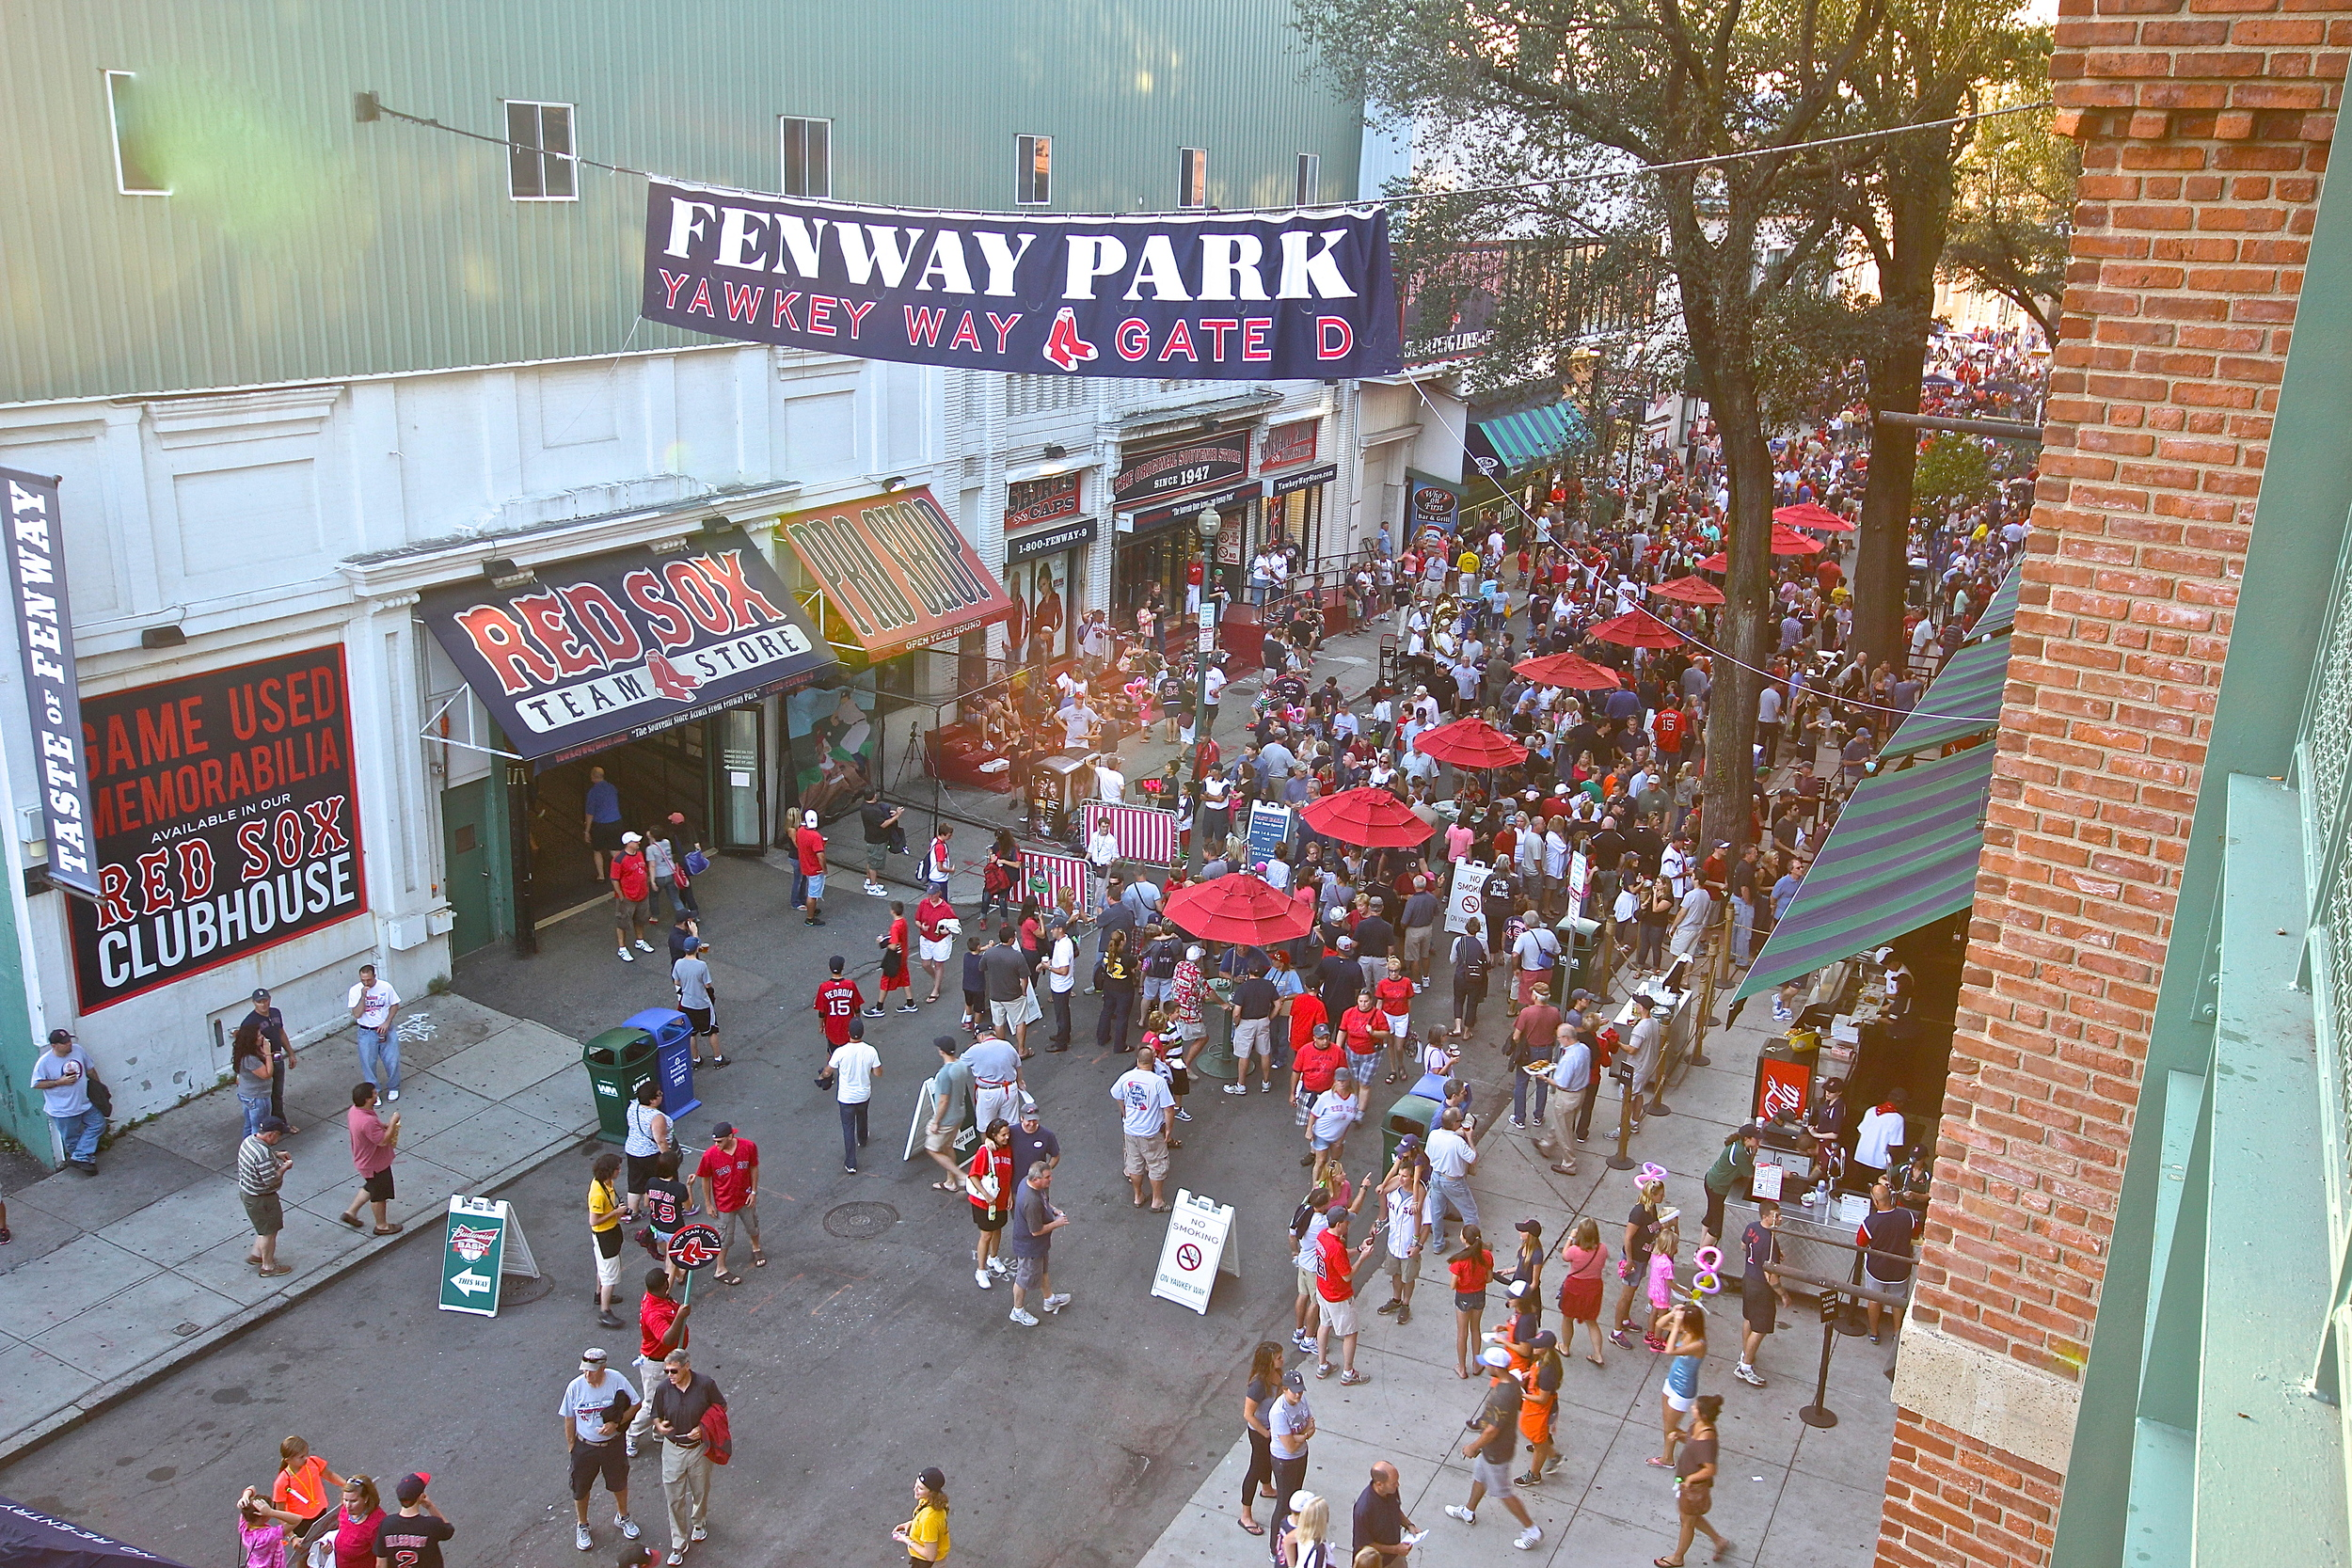 Yawkey Way from above 2.JPG